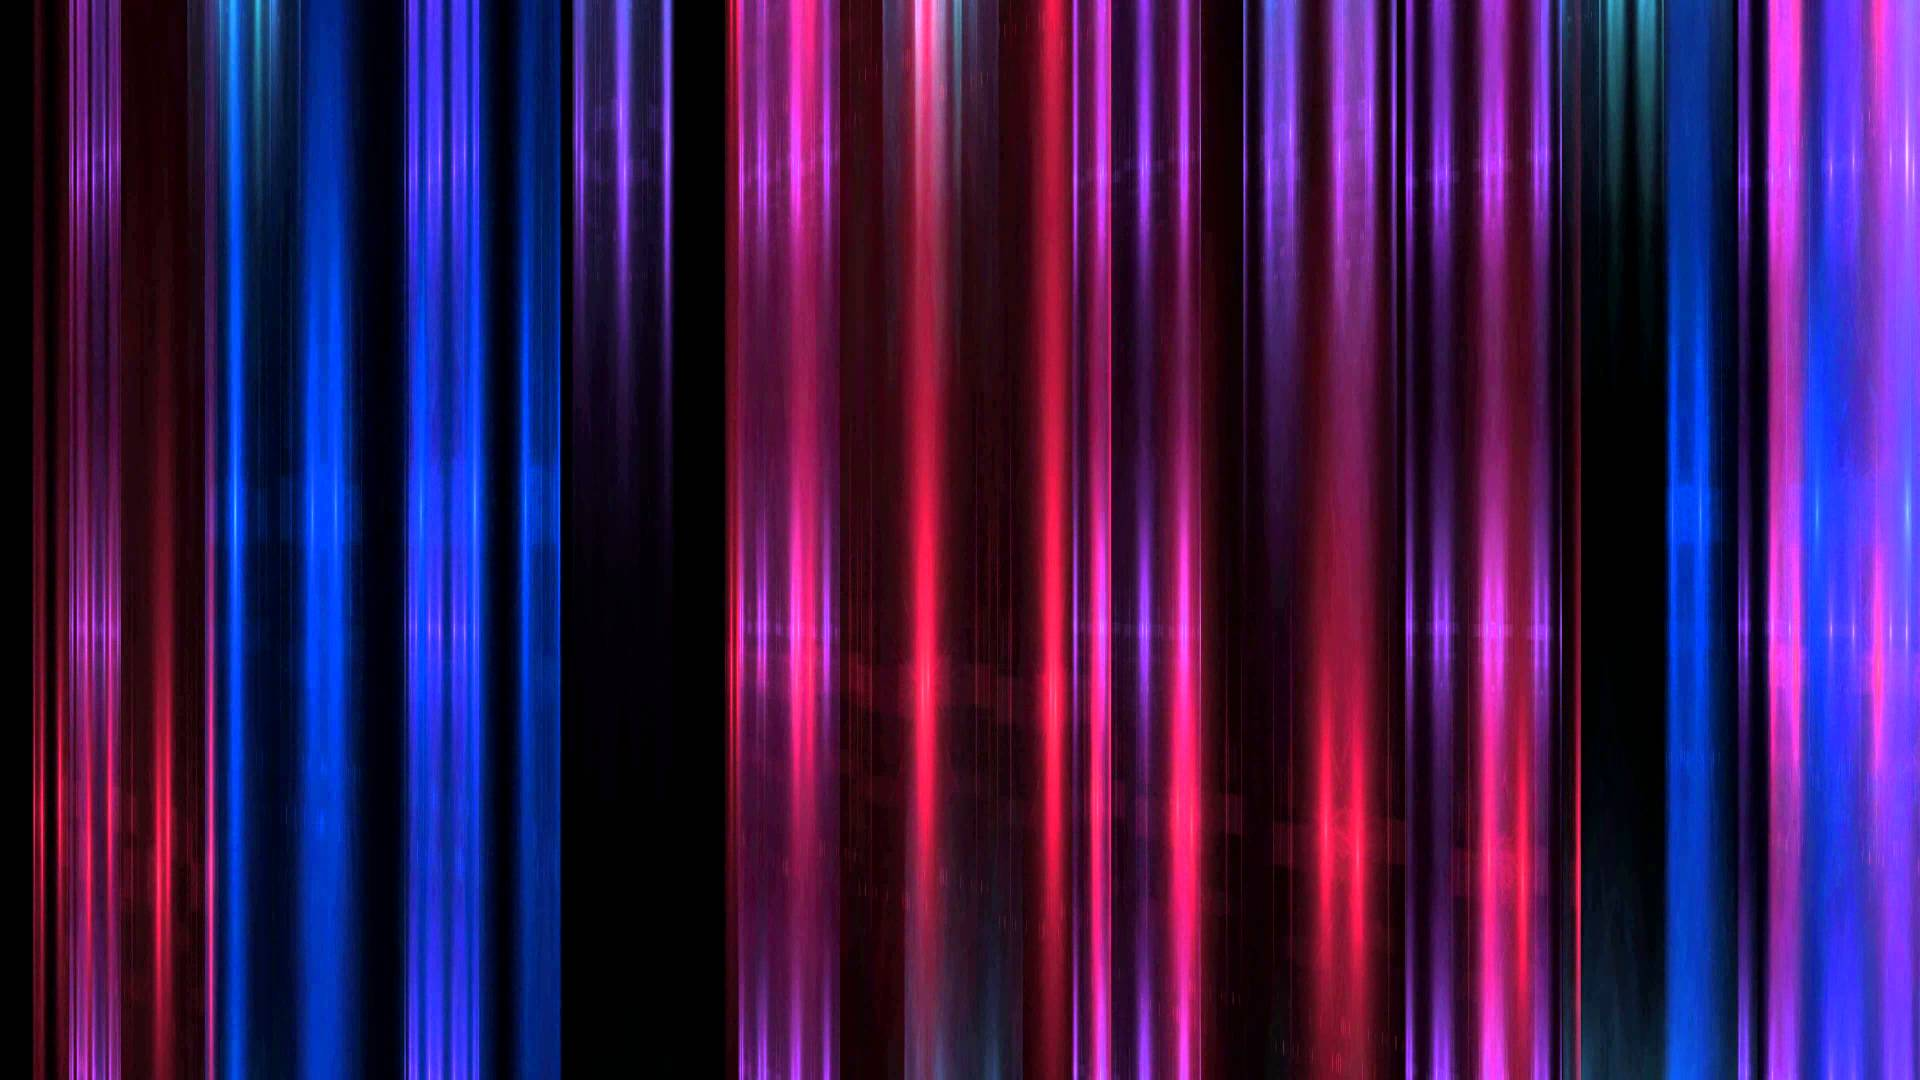 4K UHD Colorful Shining Lines Dance Animation Background 1920x1080